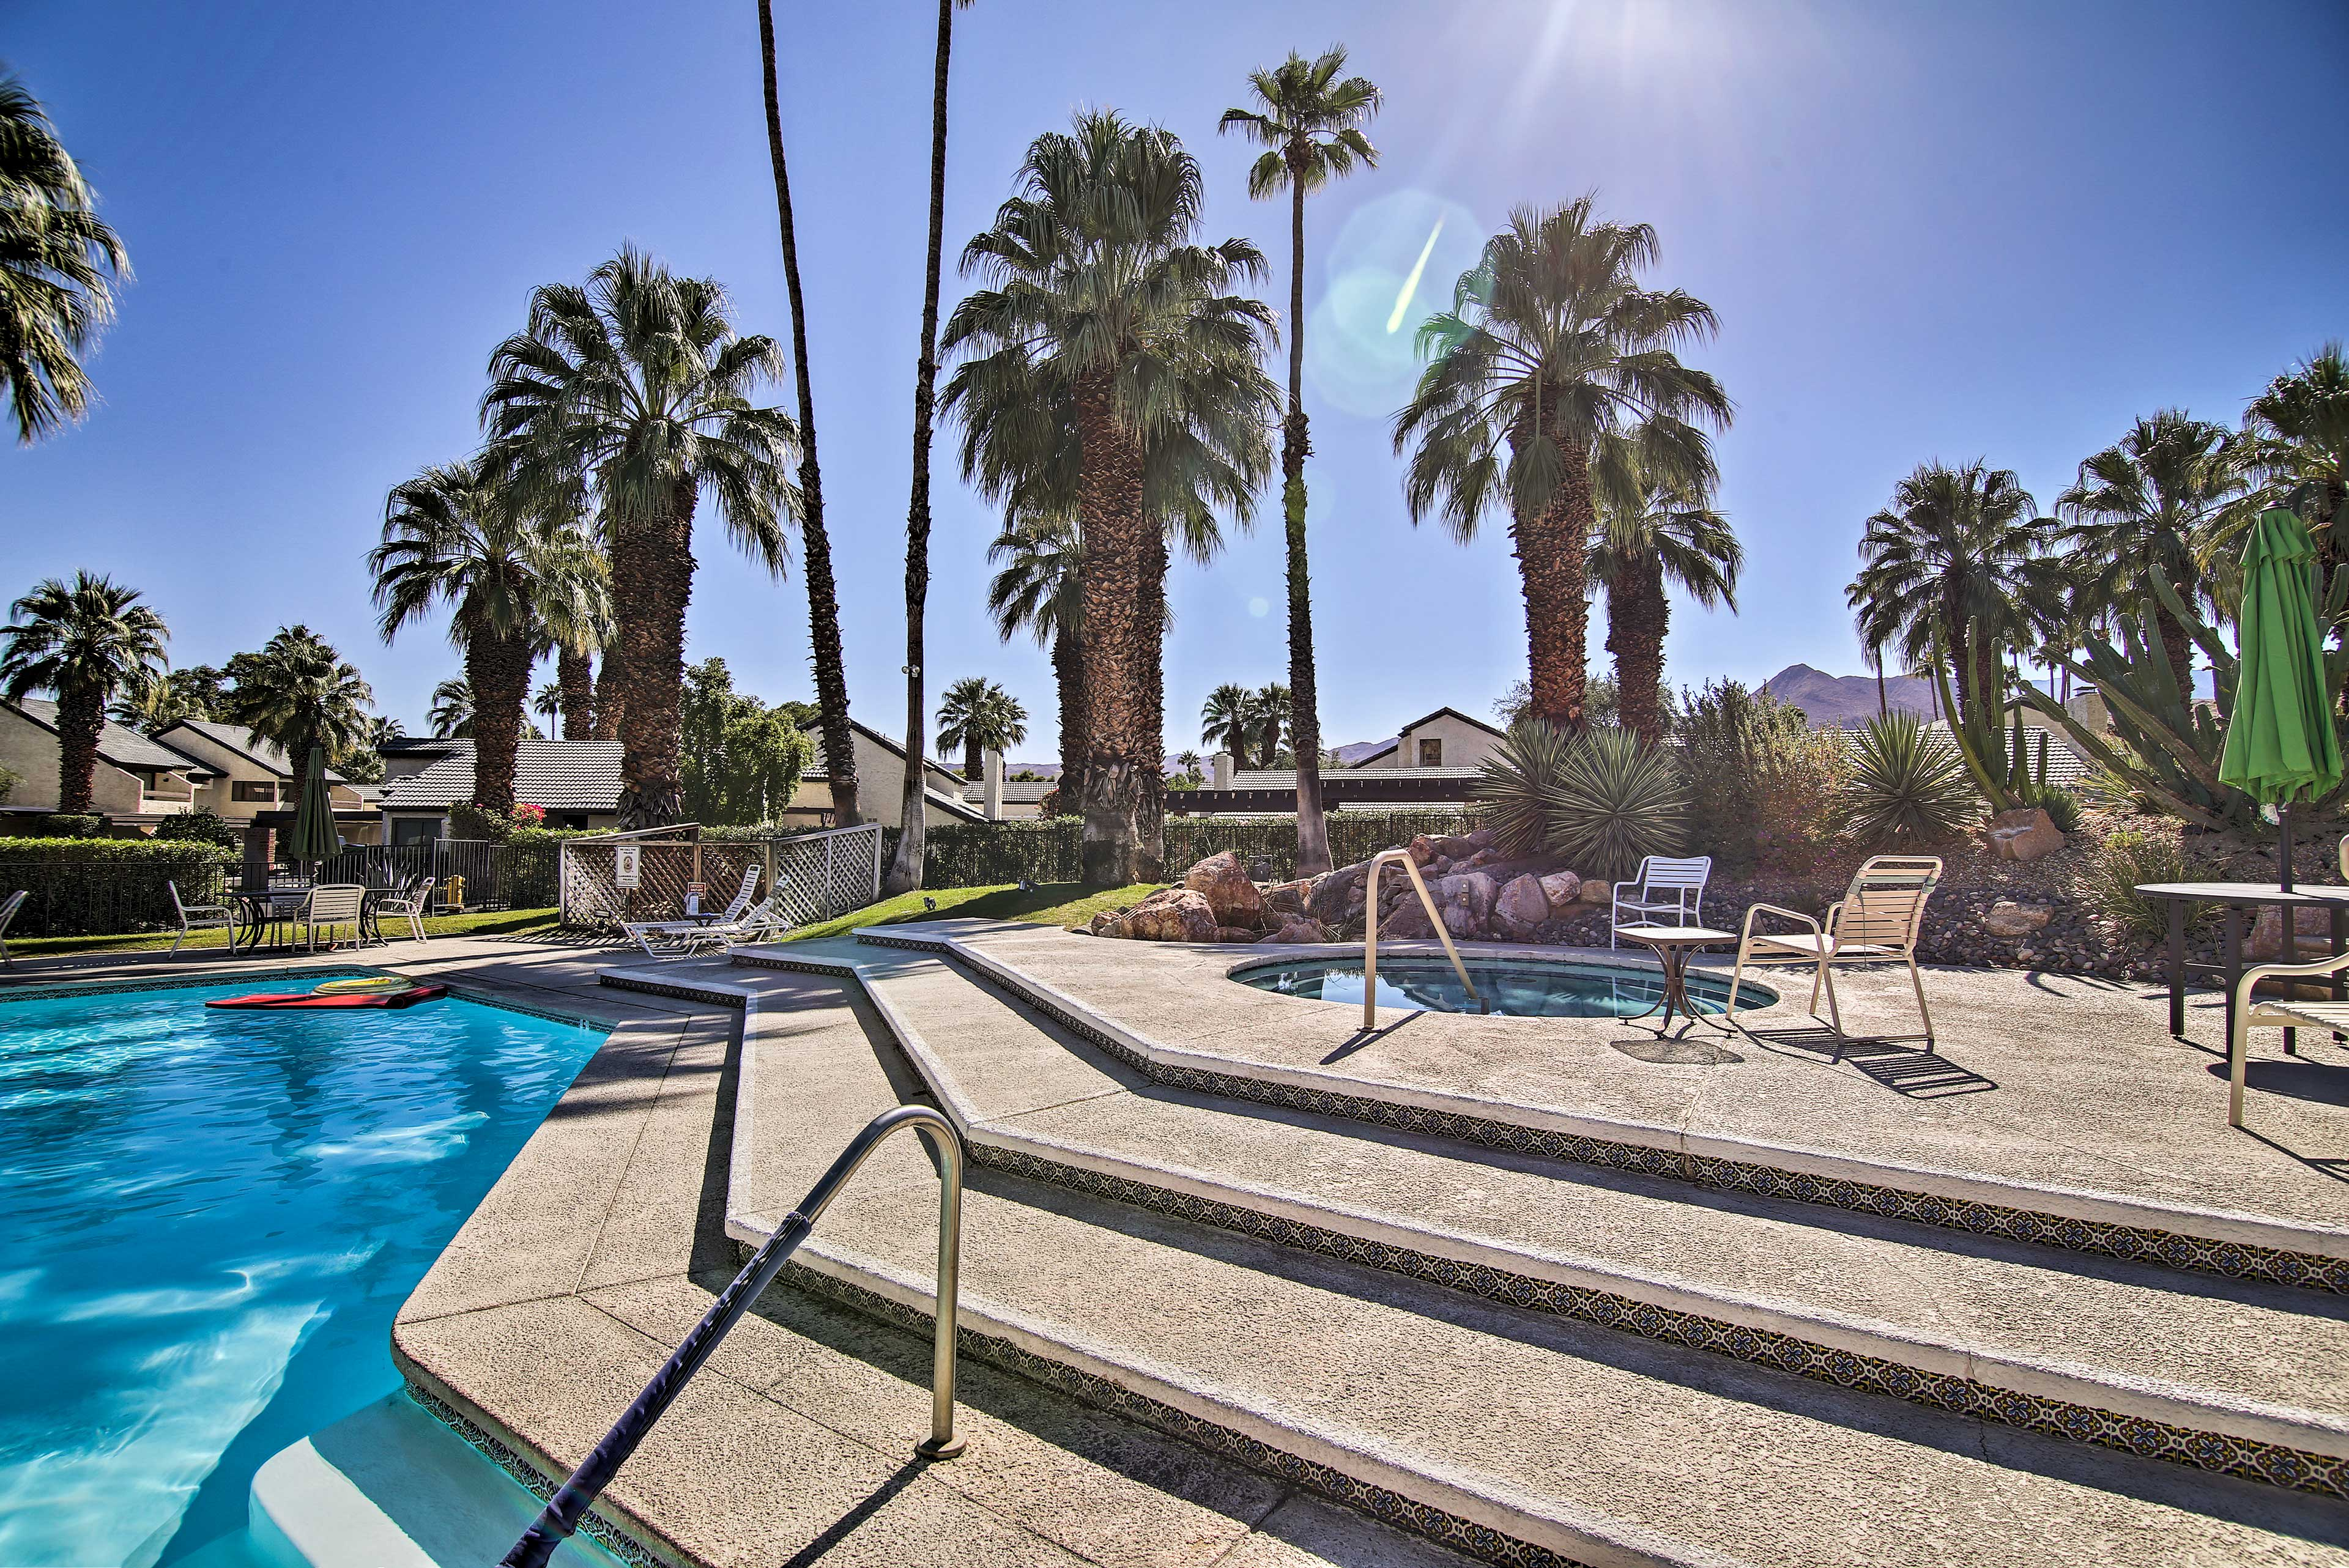 Lounge the day away by the resort pool and hot tub.